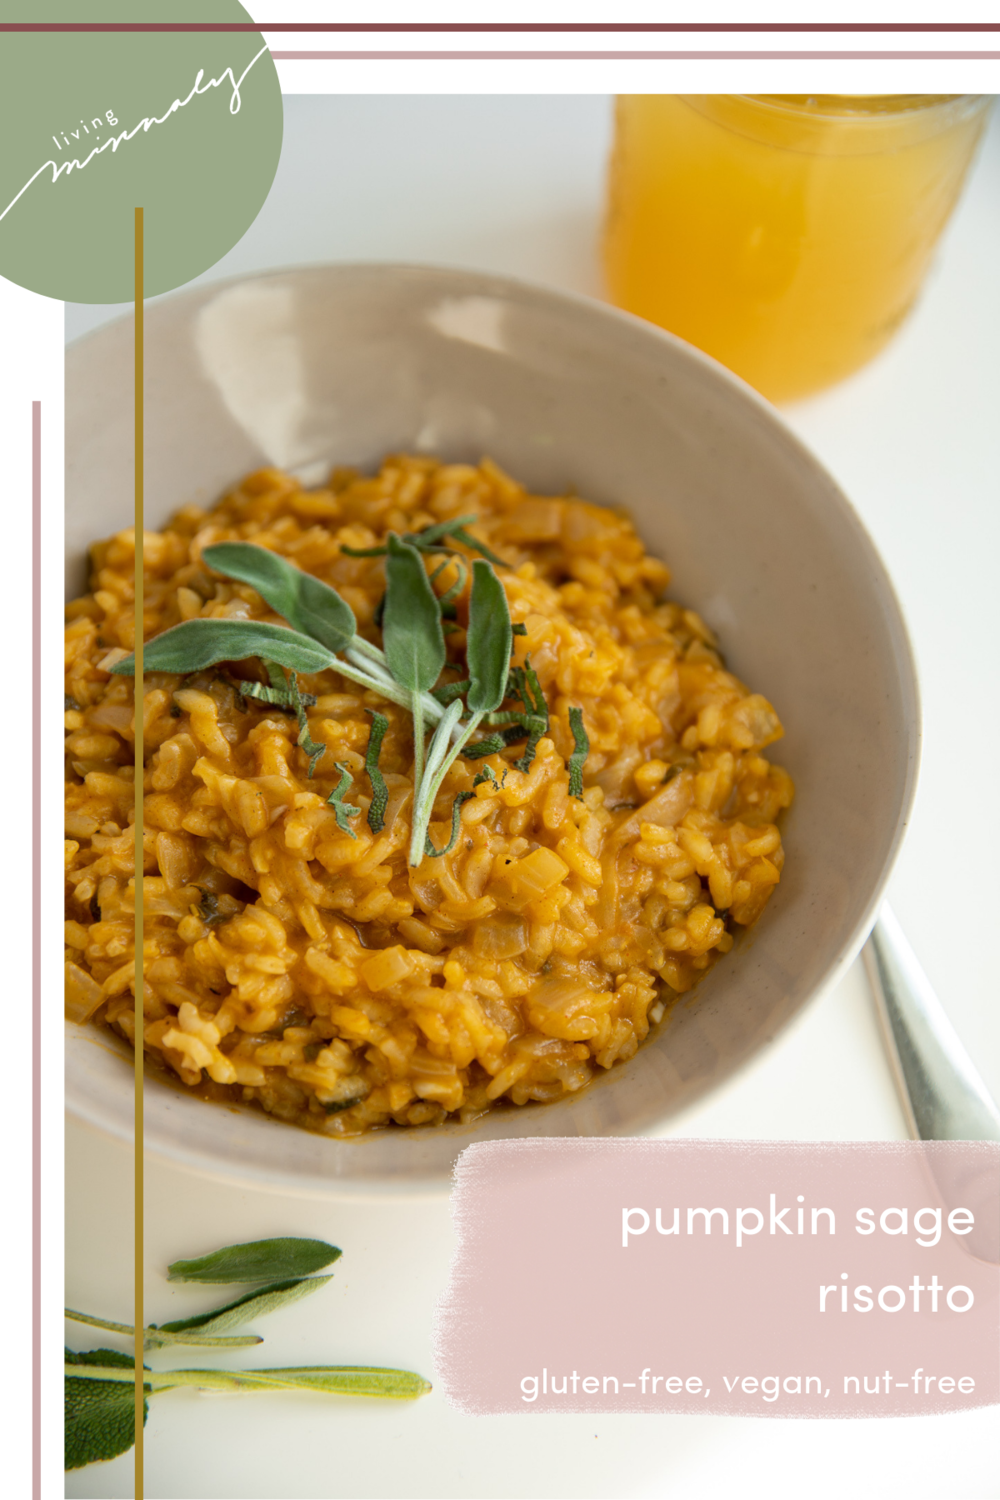 Pumpkin Sage Risotto ( GF + Vegan) | Living Minnaly